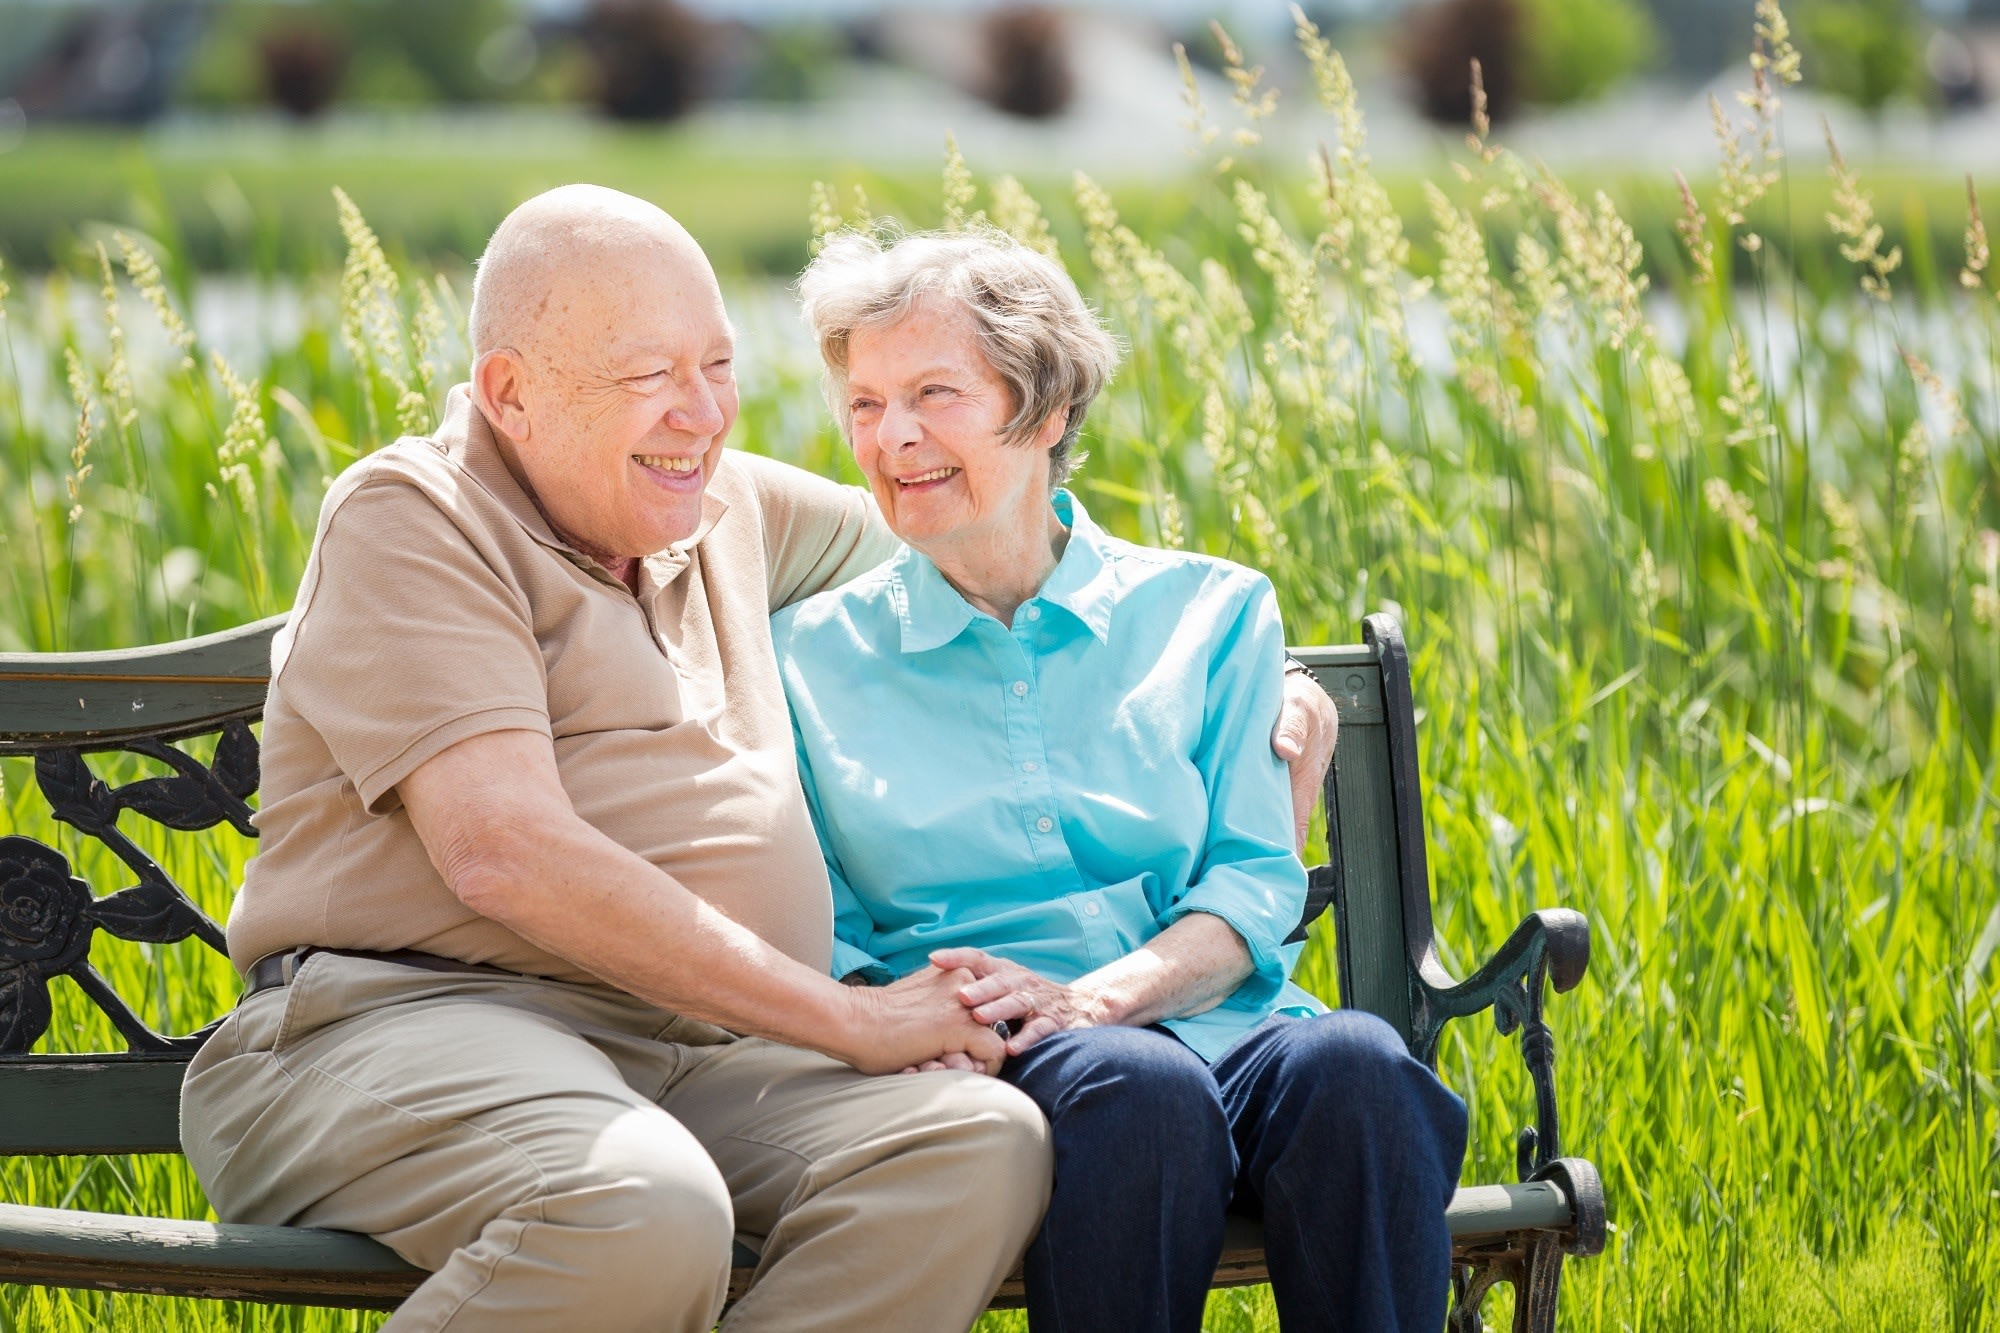 Residents enjoy a sweet moment by the pond in Whitefish